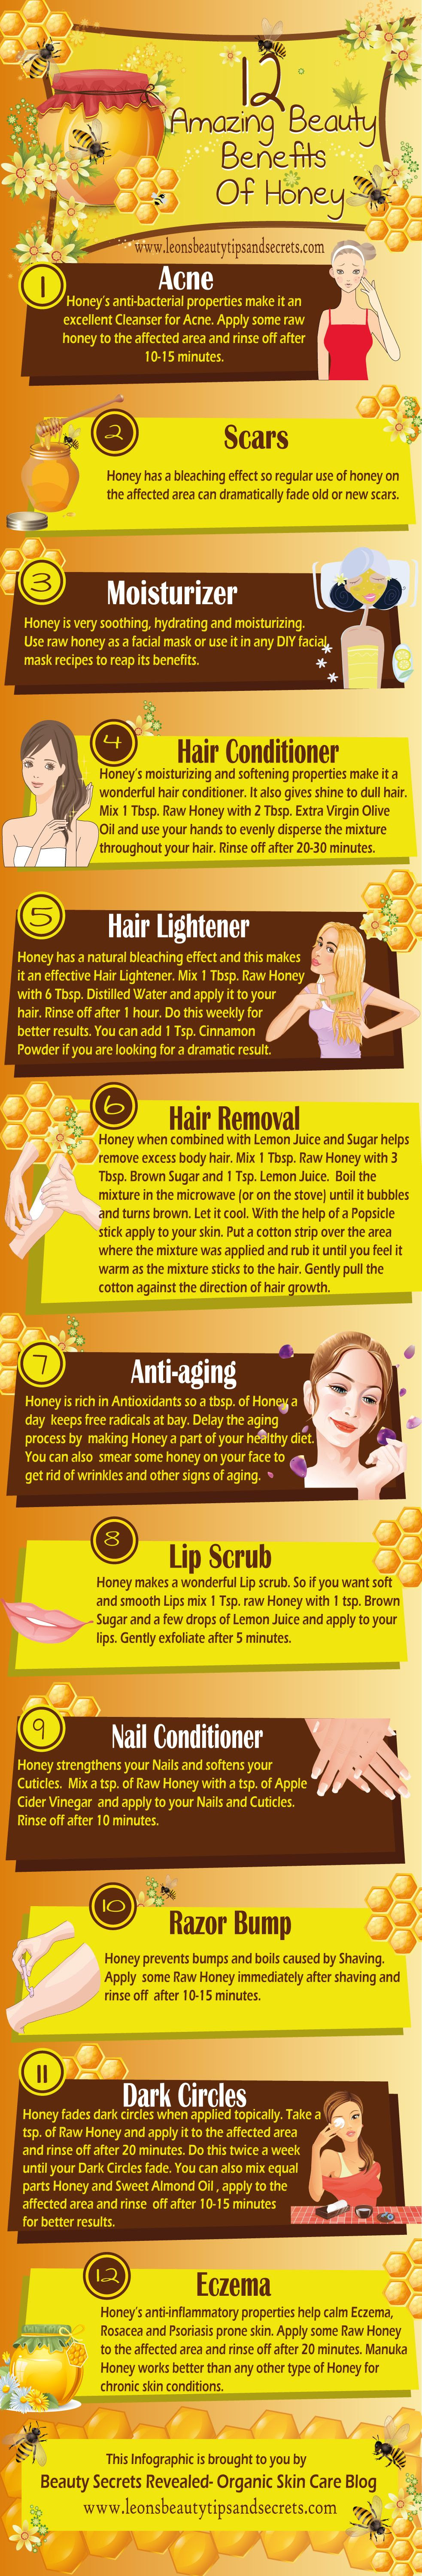 12 Amazing Beauty Benefits Of Honey #infographic